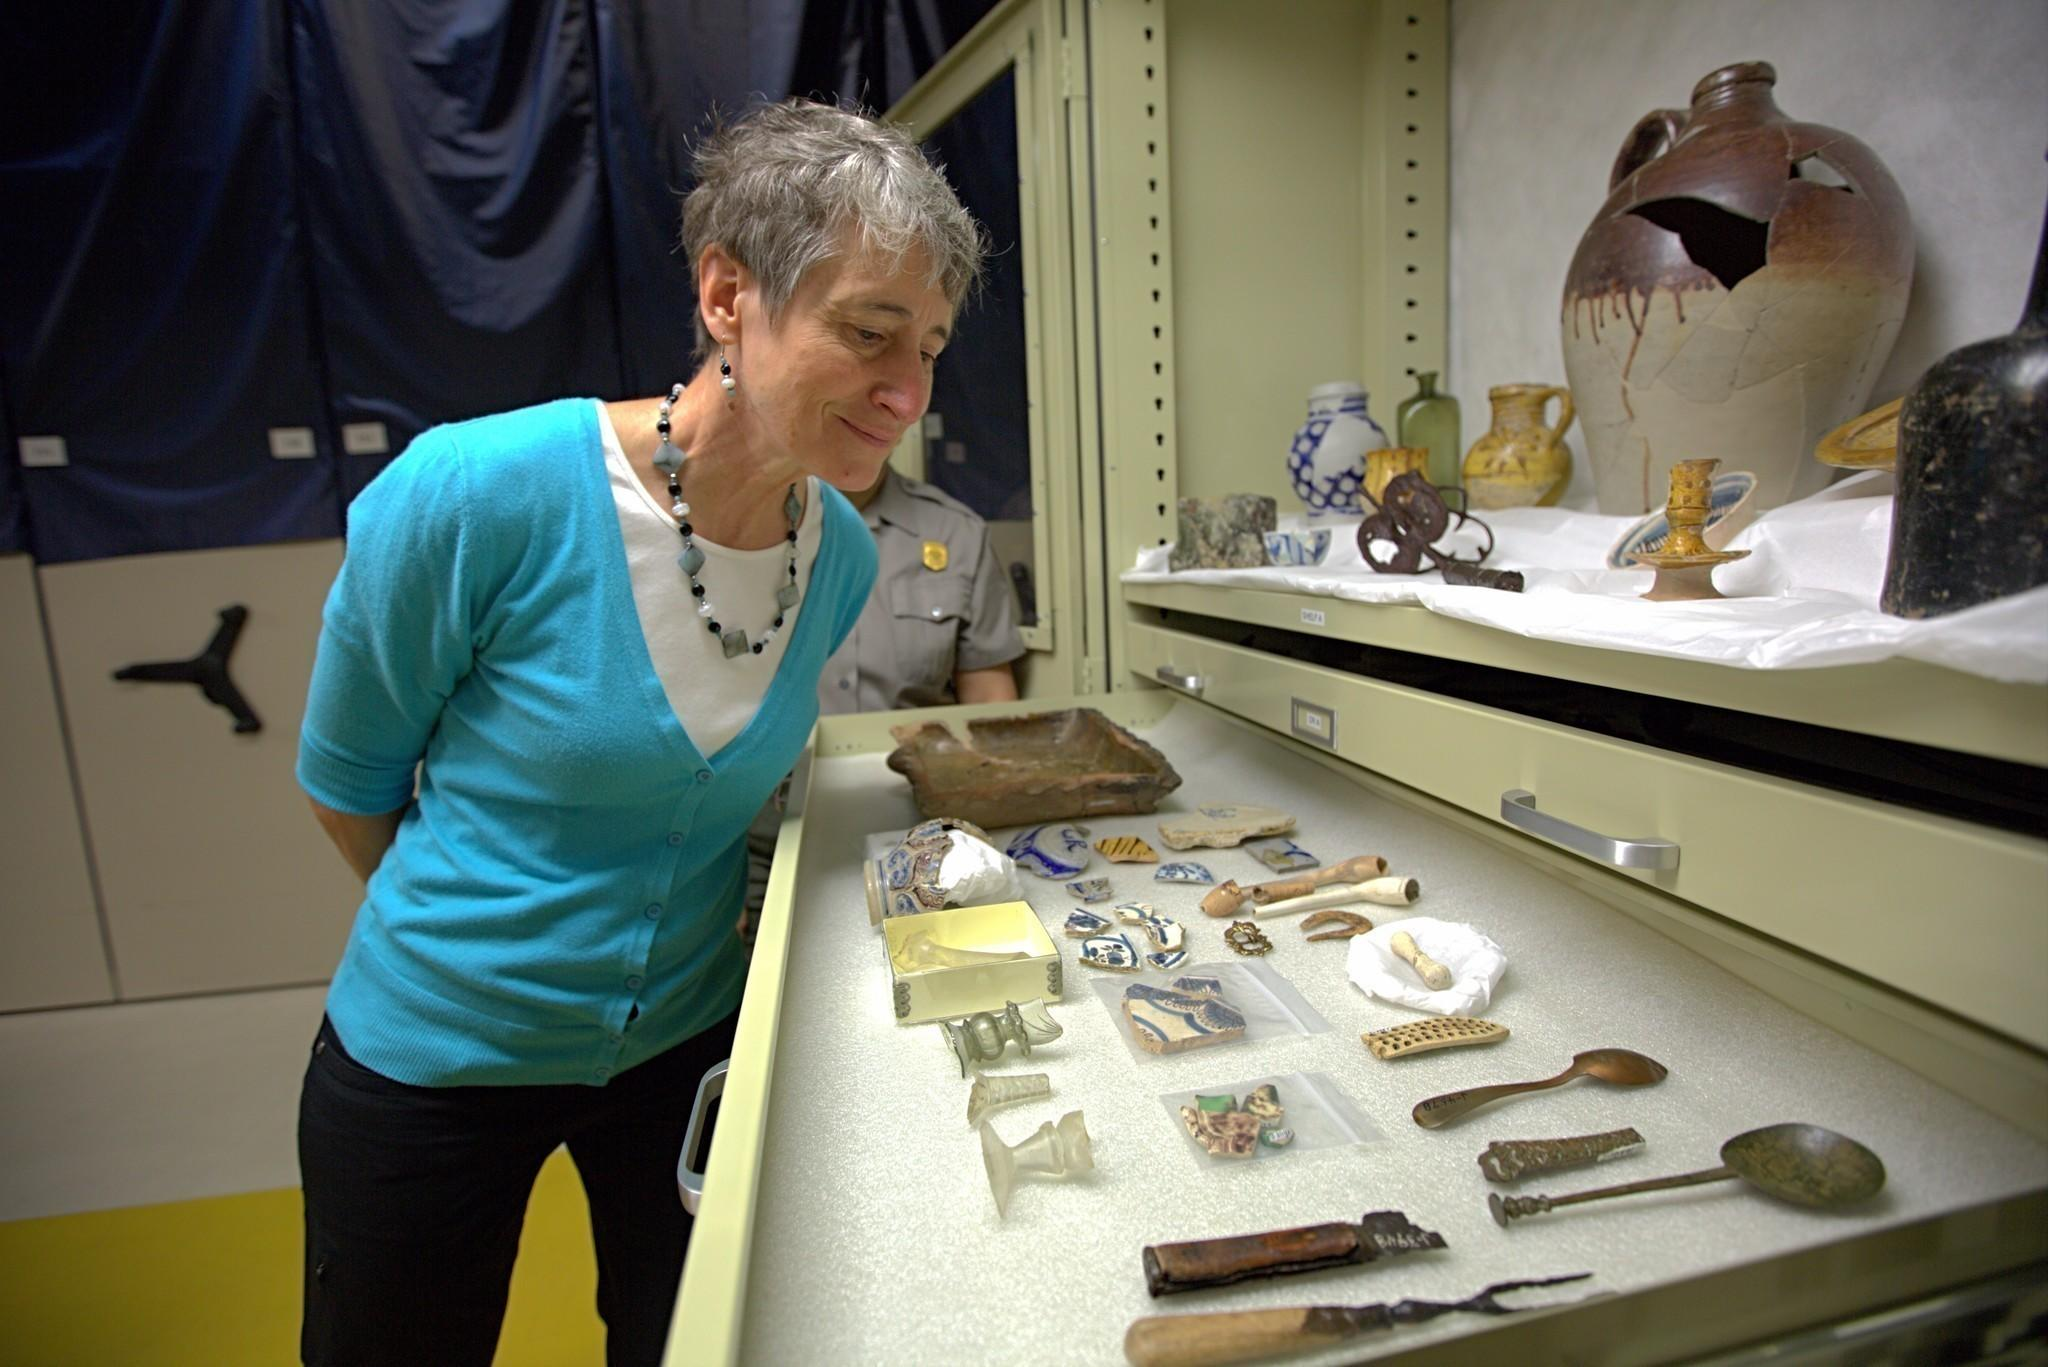 U.S. secretary of interior Sally Jewell visits Jamestown Island historic sites. Jewell inspects some of the artifacts stored at Jamestown's Historic Park.